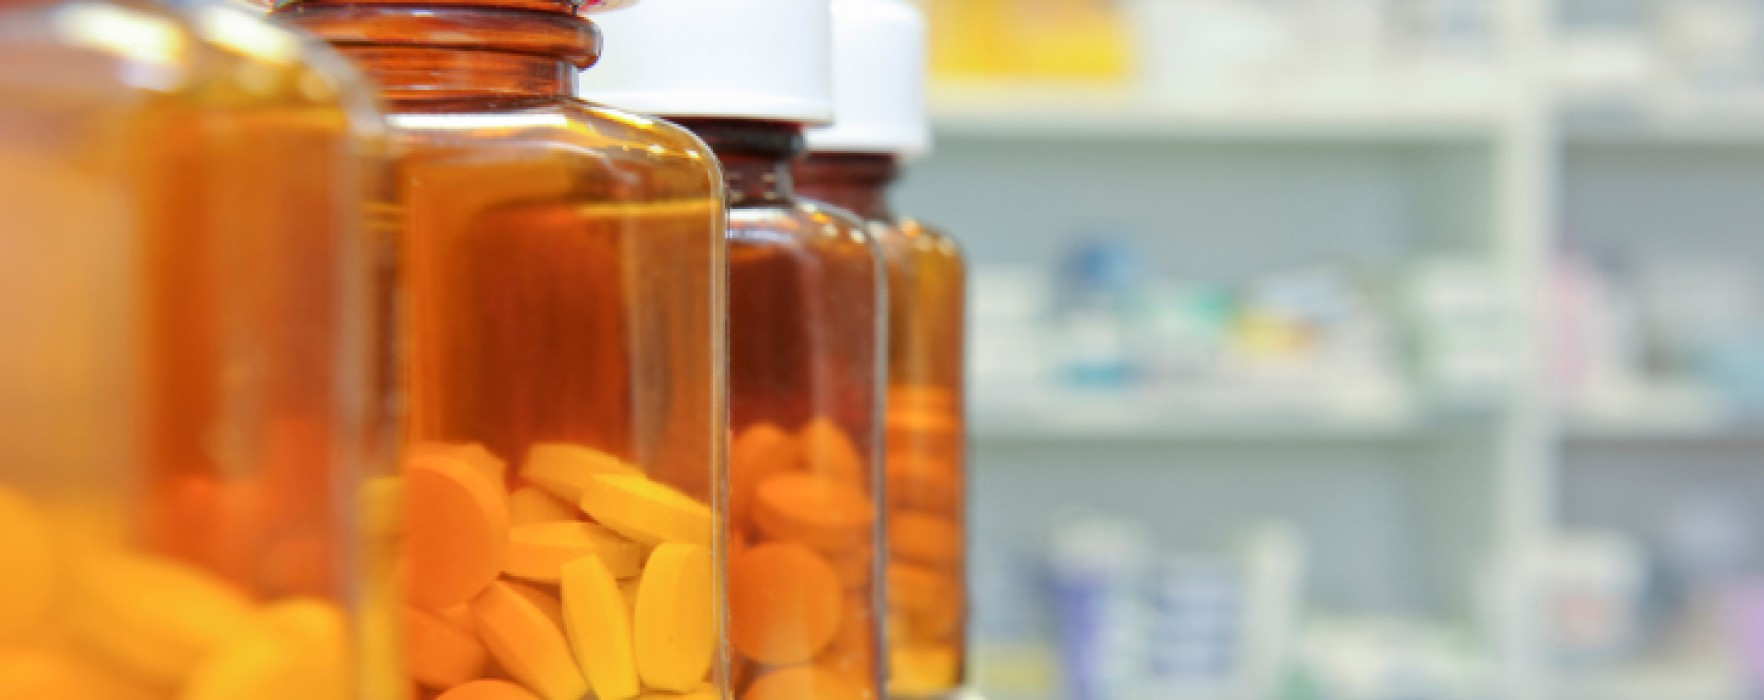 Linking Herbal Supplements with Liver Injury